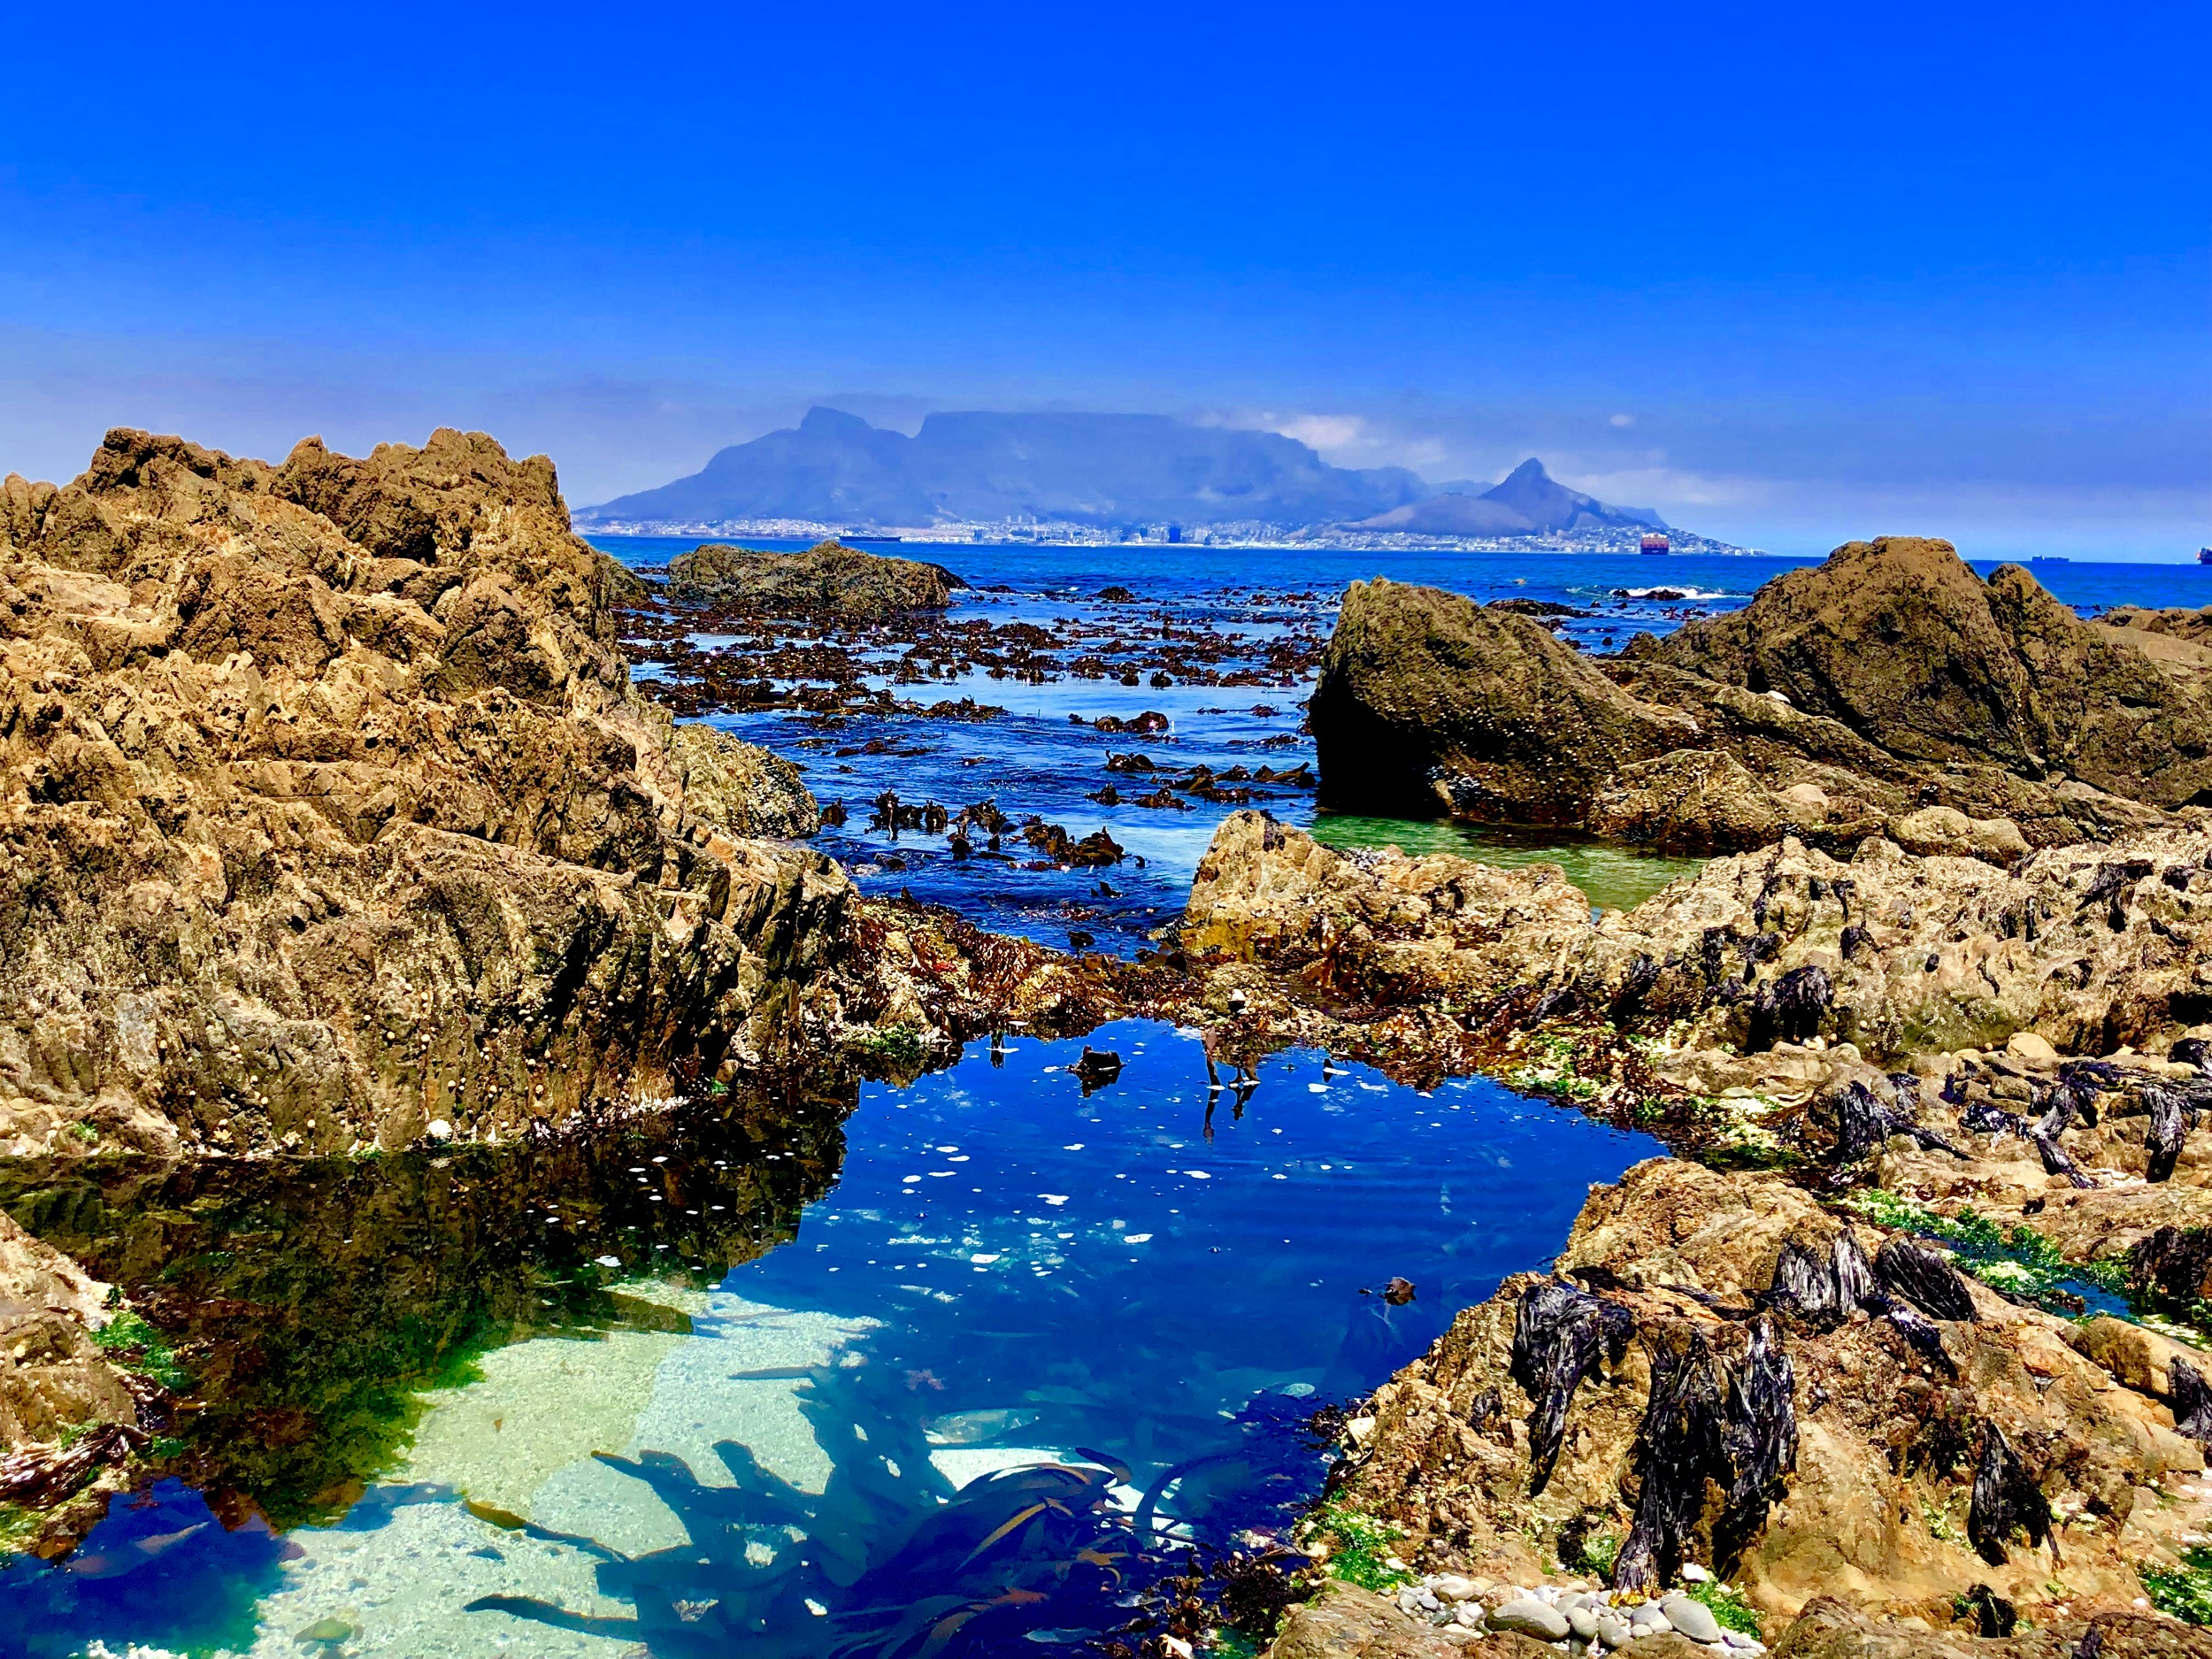 Tide pools at Dolphin Beach, Cape Town